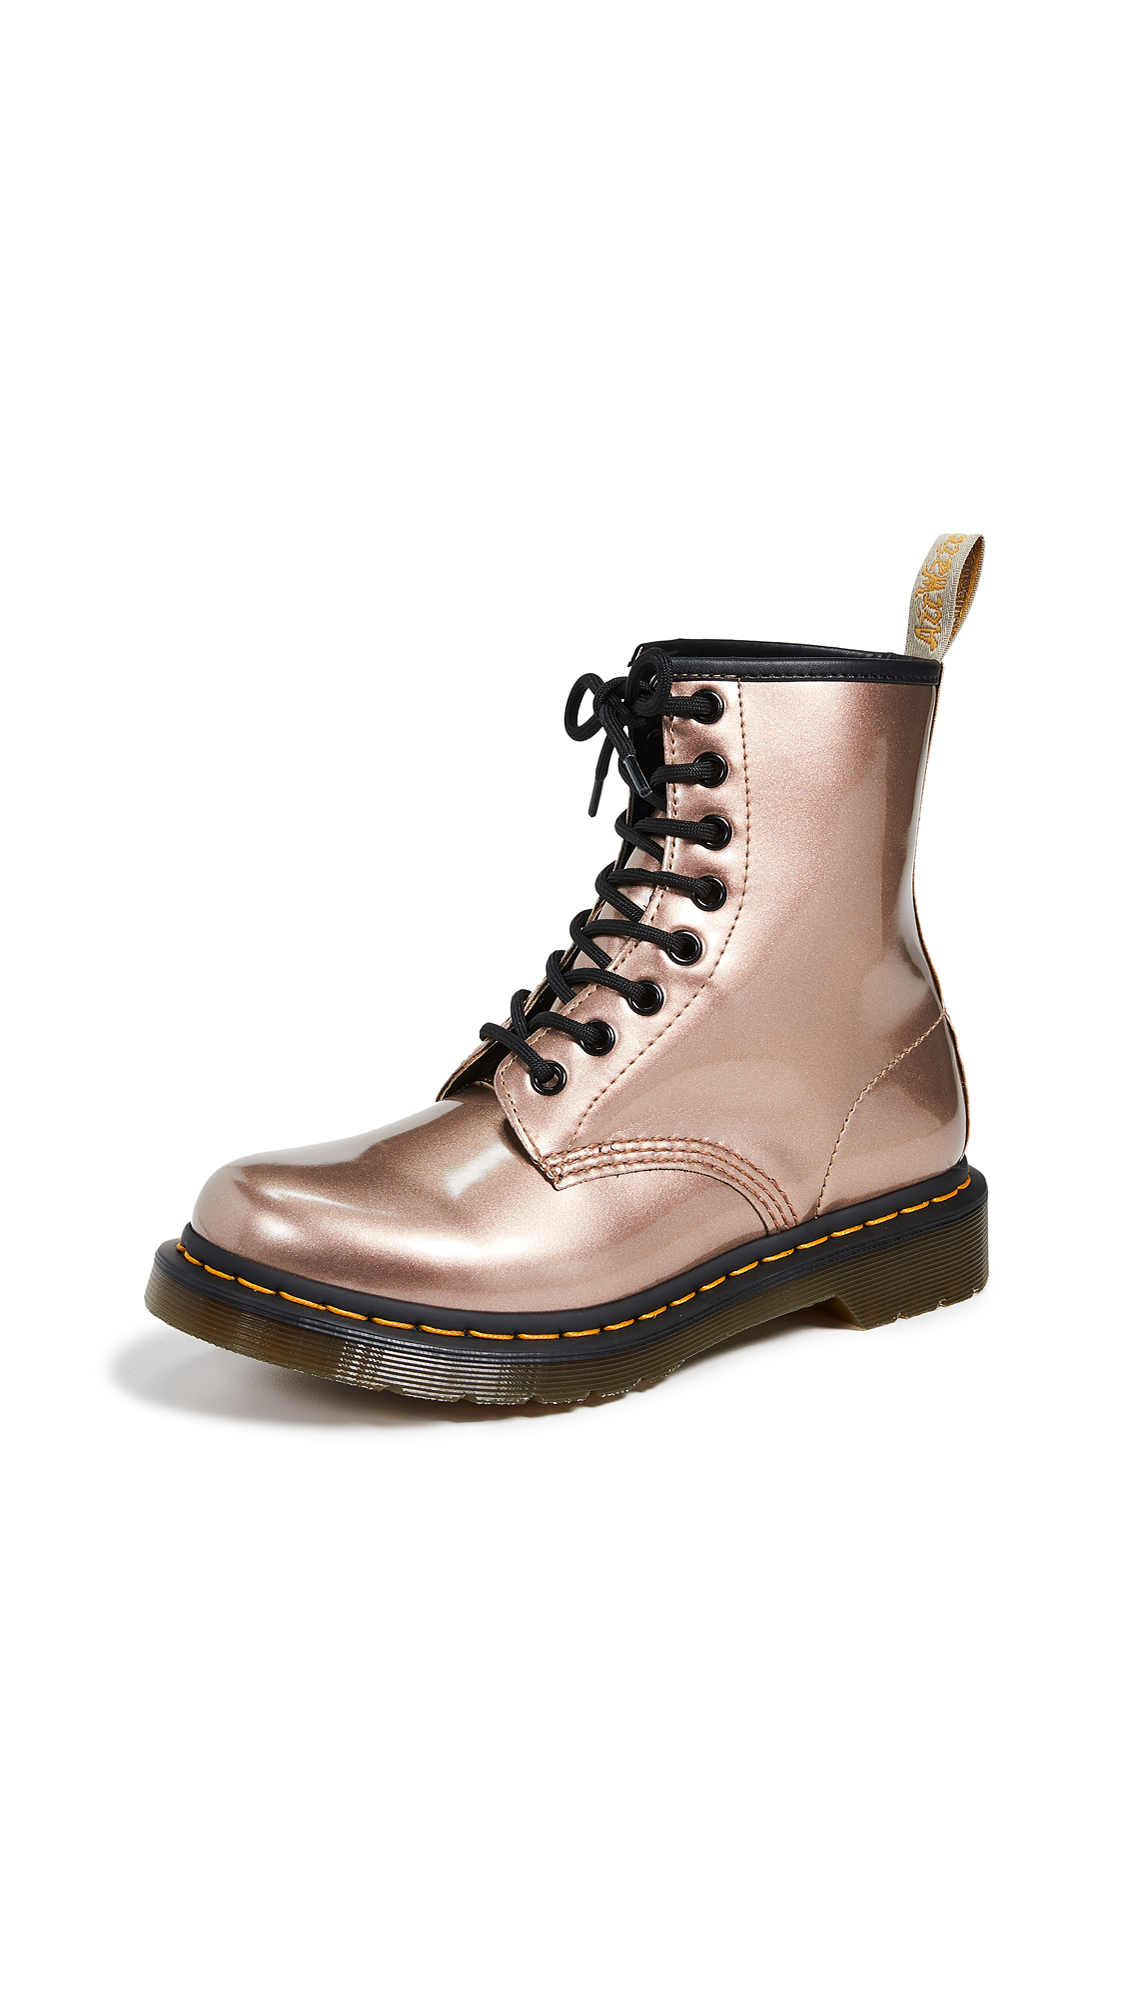 Dr. Martens 1460 Vegan 8 Eye Boots - Rose Gold